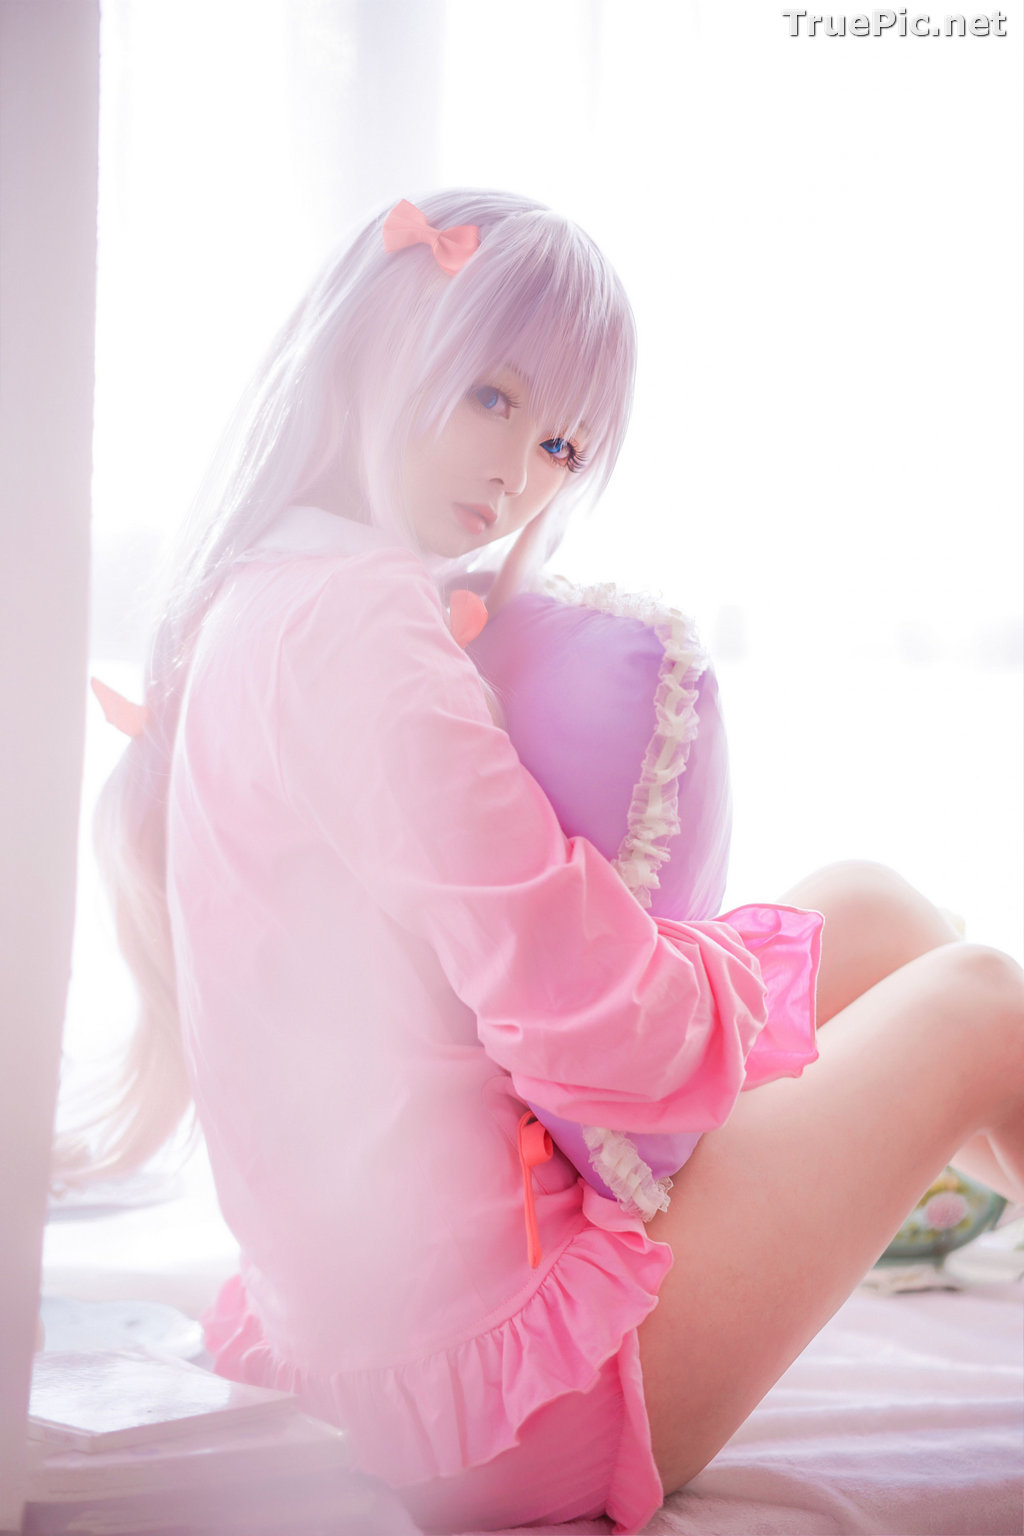 Image [MTCos] 喵糖映画 Vol.048 - Chinese Cute Model - Lovely Pink - TruePic.net - Picture-9